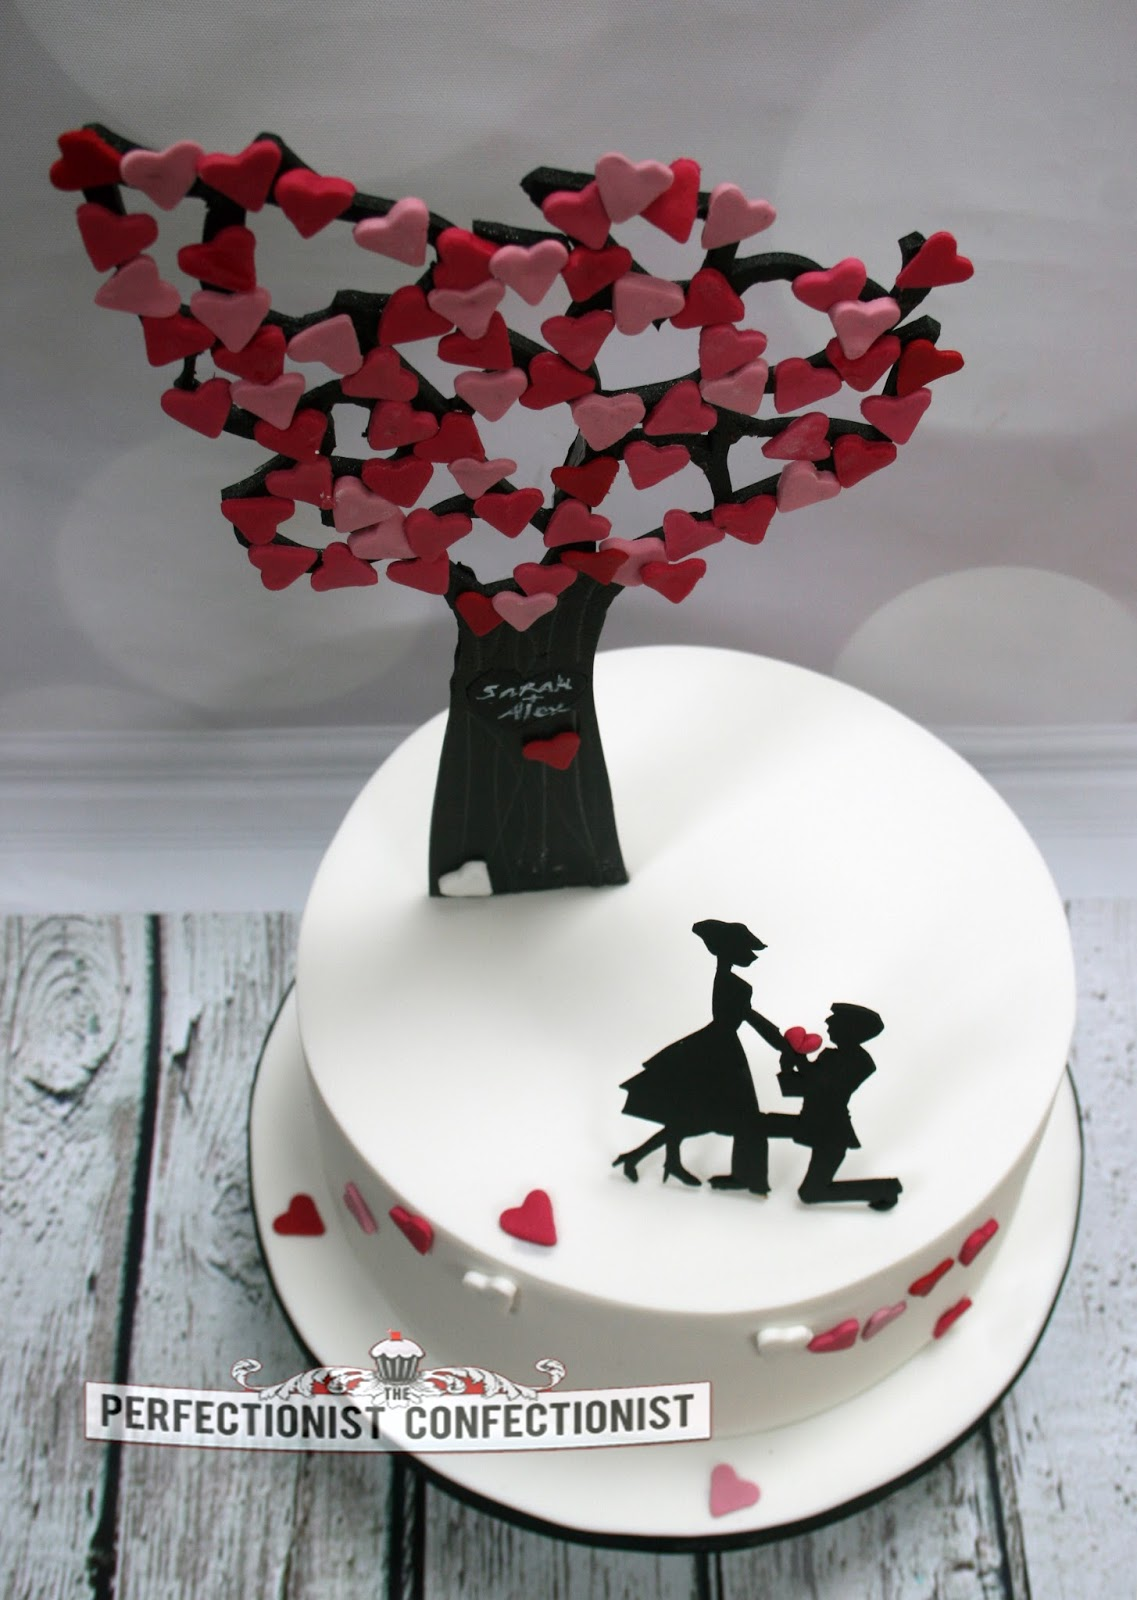 Cake Decorations For Engagement : The Perfectionist Confectionist: Sarah and Alex ...